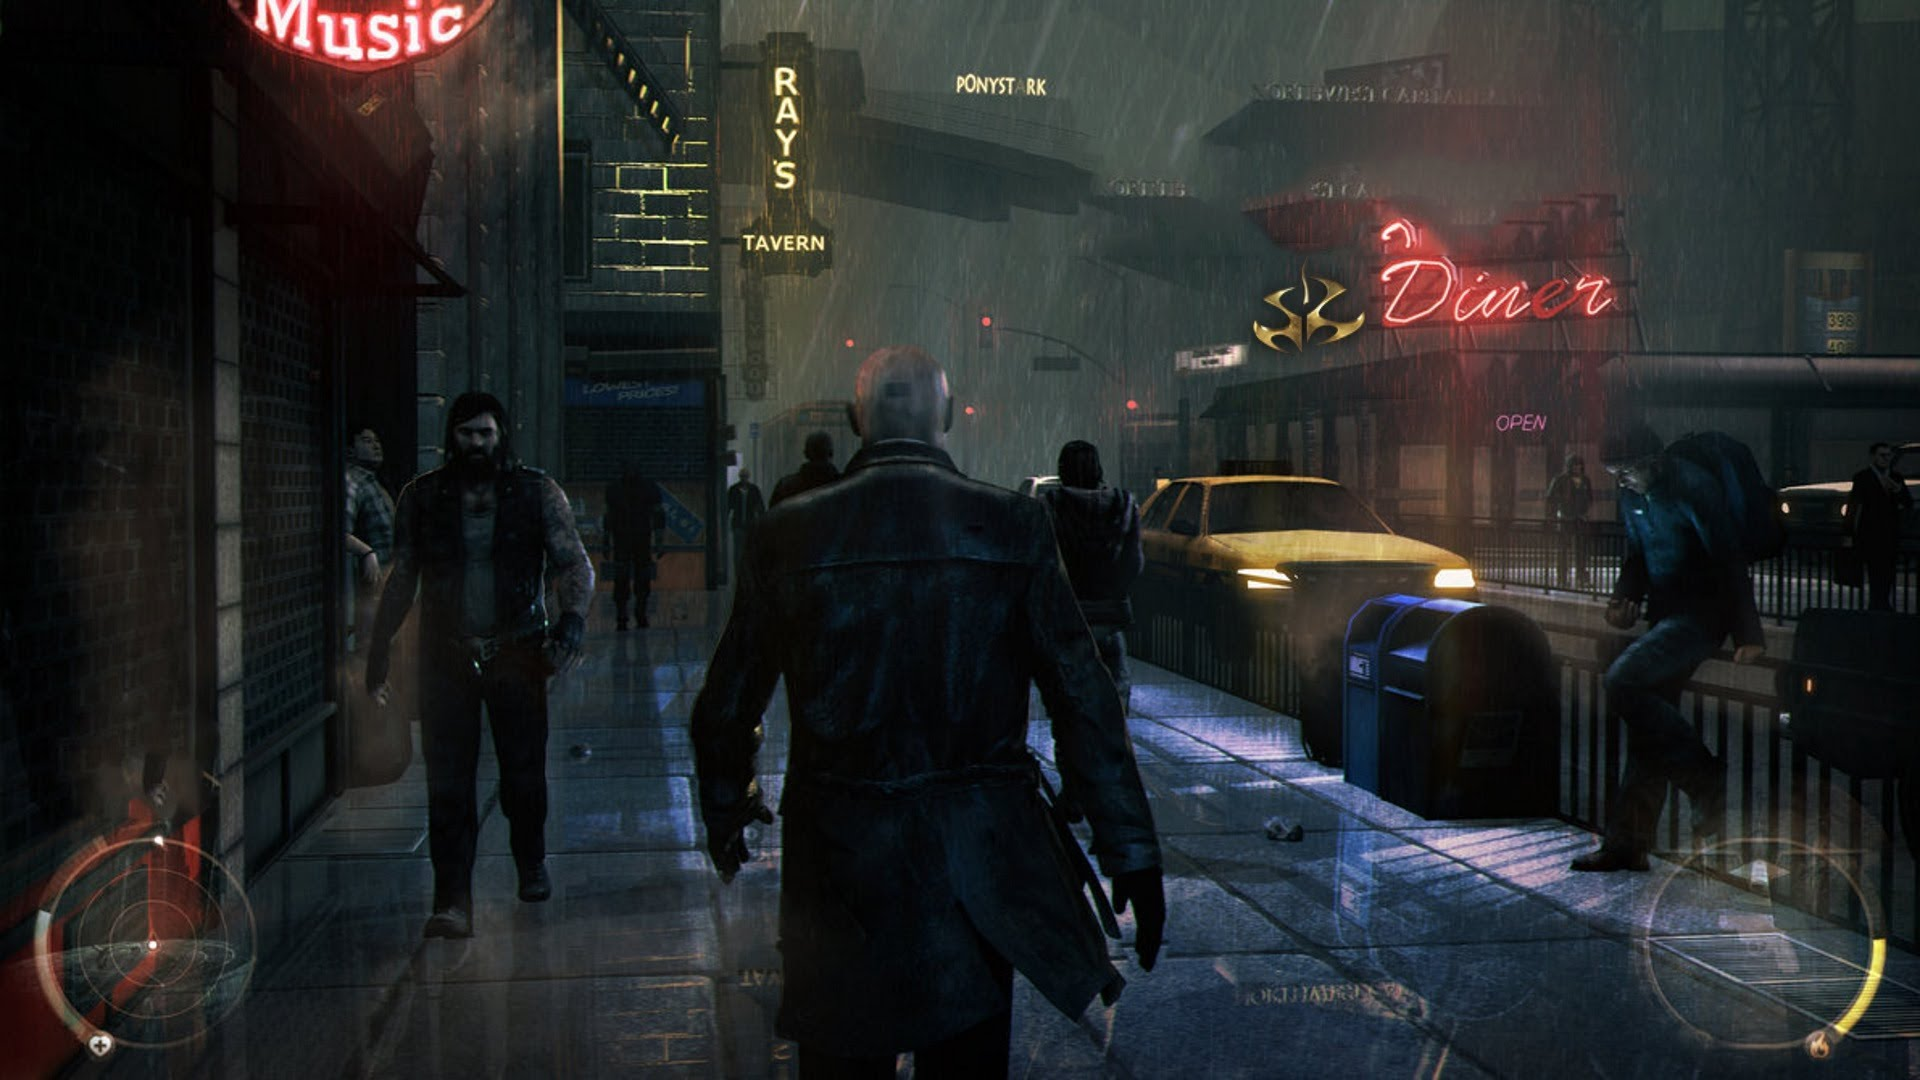 hitman-2016-got-some-serious-graphical-update-with-different-graphics-drivers